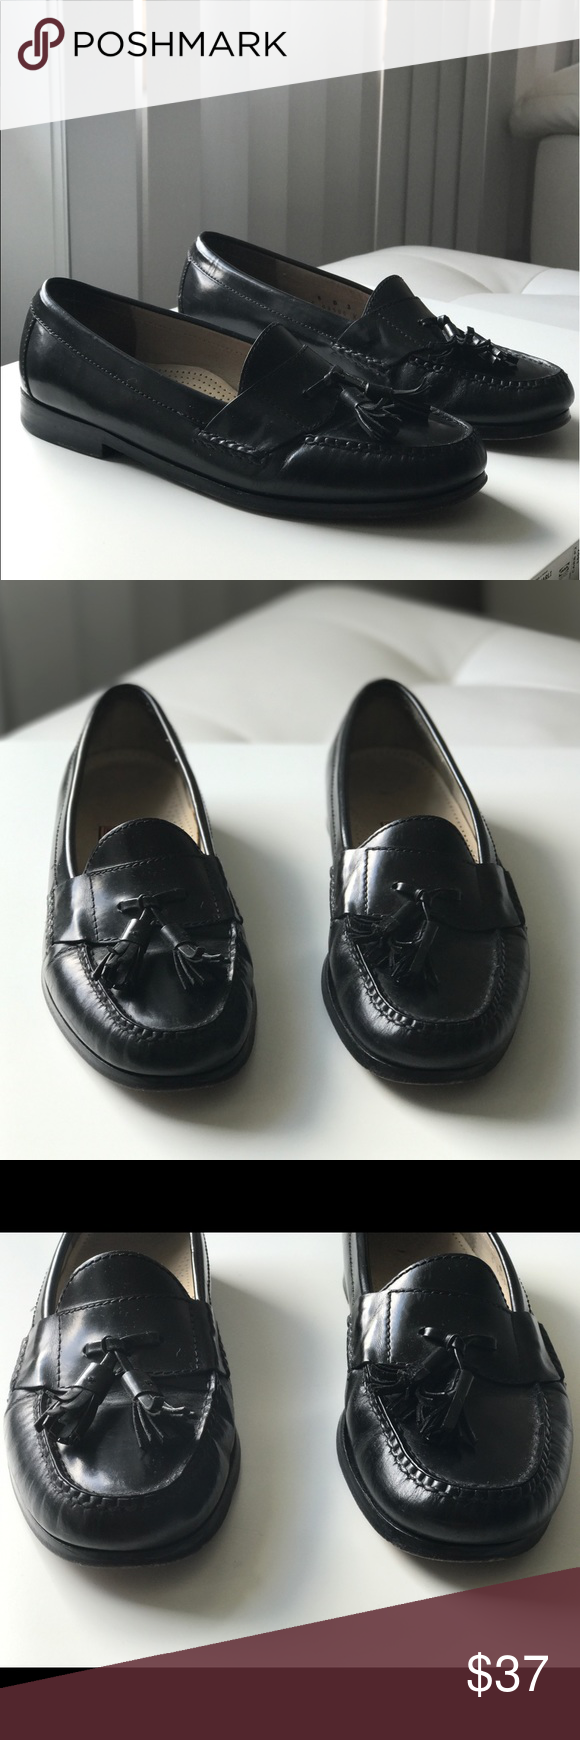 COLE HAAN SZ8 D BLACK LEATHER PINCH TASSEL LOAFERS COLE HAAN MENS SZ 8 D BLACK LEATHER PINCH TASSEL MOC TOE LOAFERS SHOES.                                                          • very good used condition  • Leather • please check photos for details • do not hesitate to contact if you have any question   Thanks Cole Haan Shoes Loafers & Slip-Ons